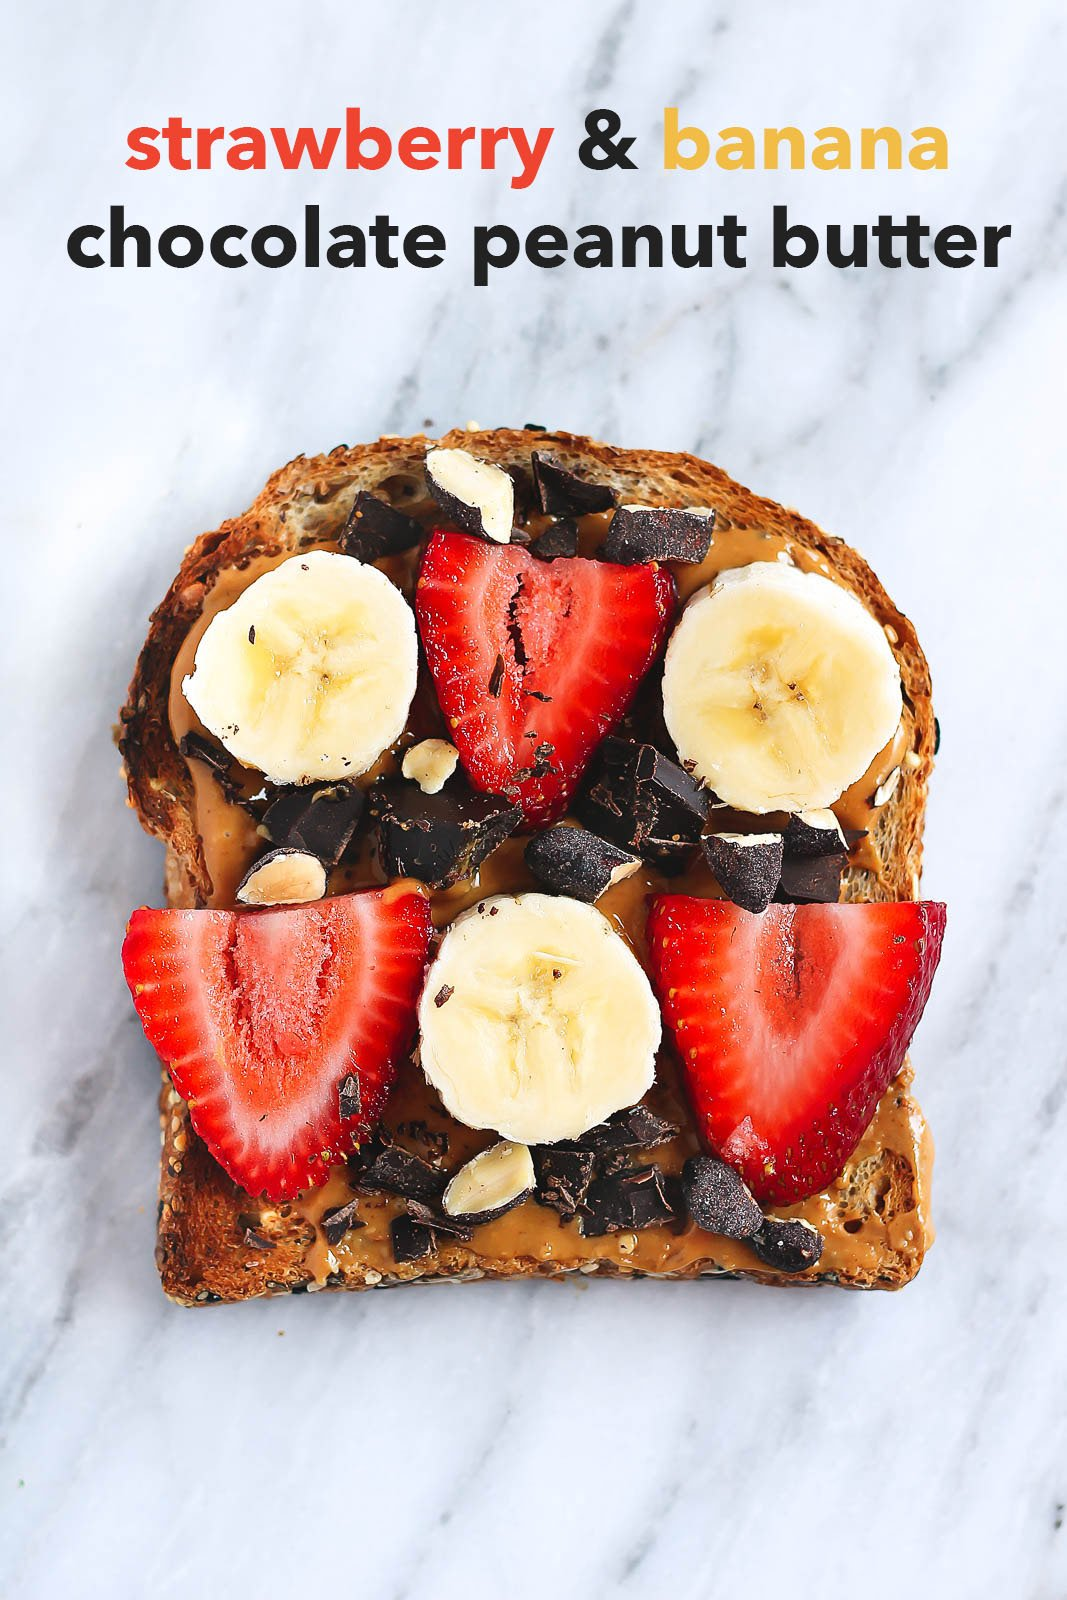 healthy breakfast toast with strawberry, peanut butter, banana and dark chocolate chunks